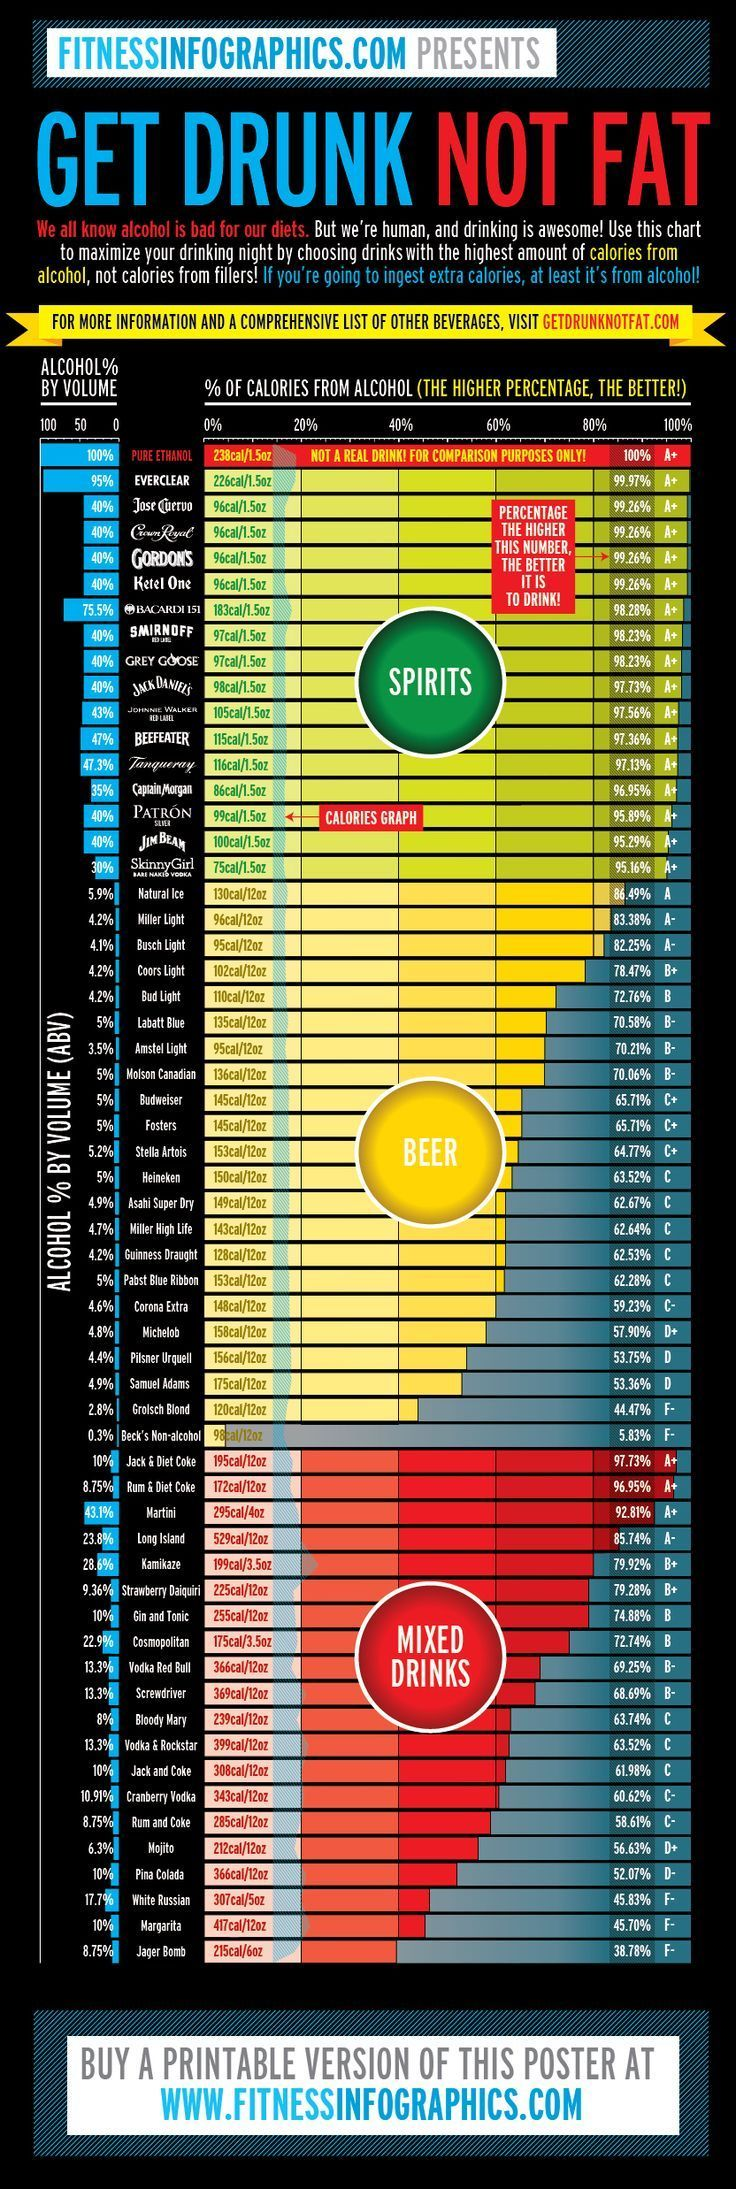 Get drunk, not fat! Use this chart to maximize your drinking by choosing drinks with the highest amount of calories from alcohol, not calories from fillers! The better the alcohol-to-calorie ratio, the less drinks you'll need to have a good time. This chart is hard to see on a phone but there's an app you can download called Great Drink Nutrition Facts with all the same info!